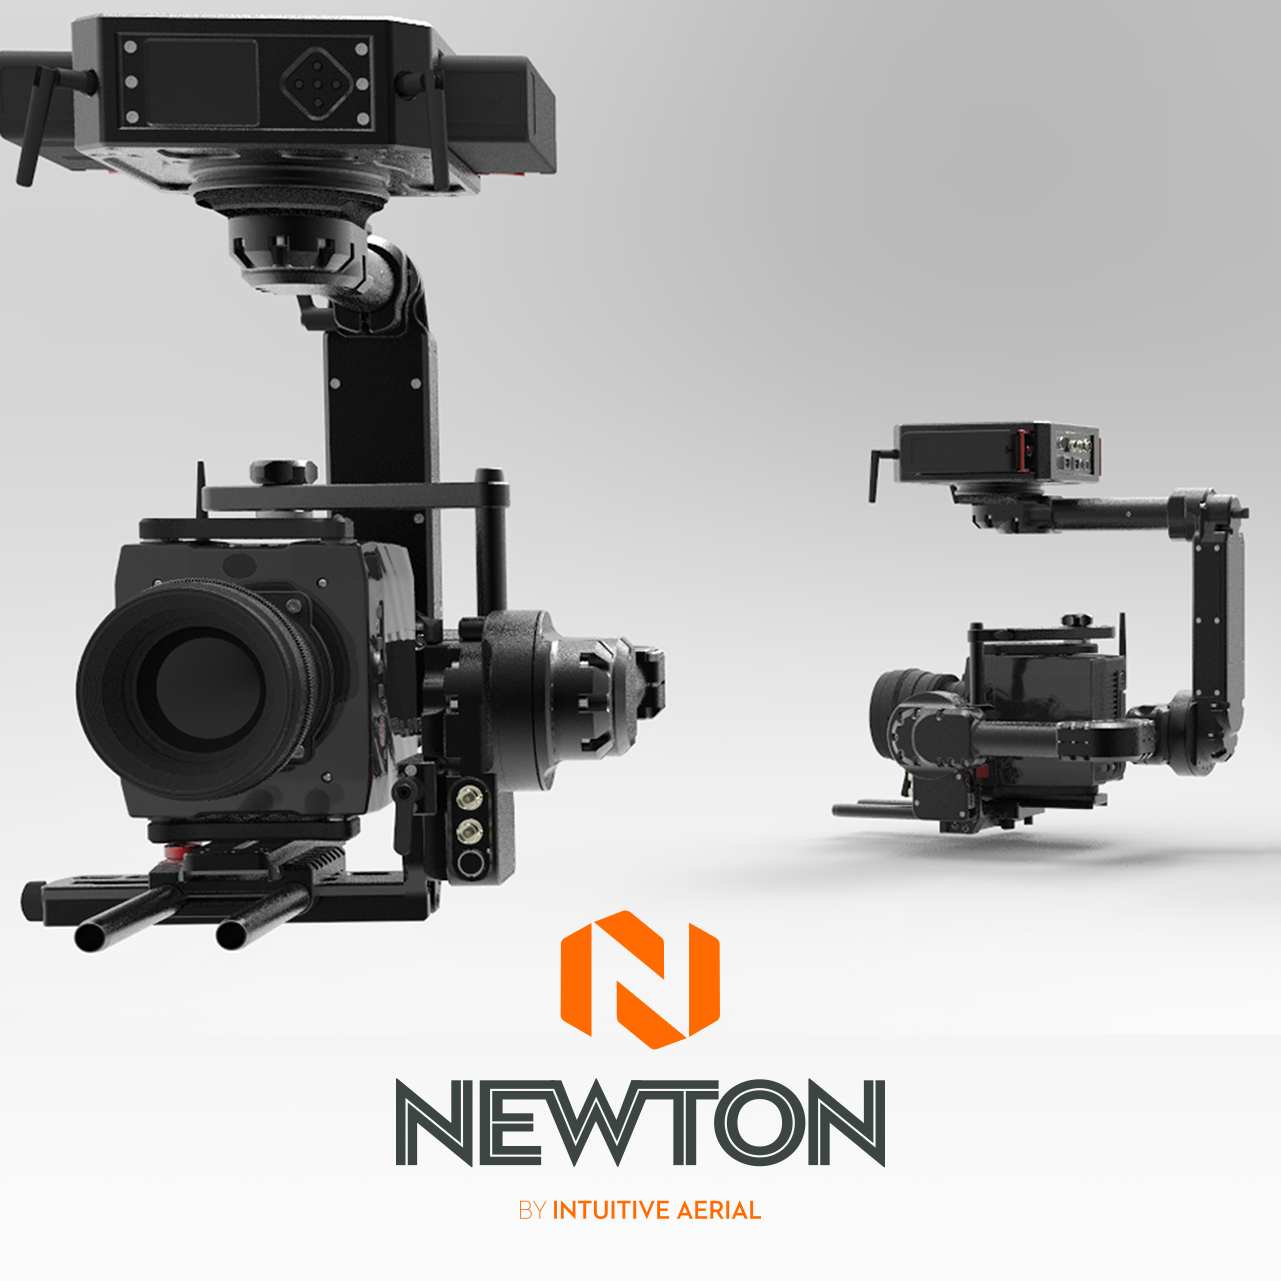 Newton by Intuitive Aerial